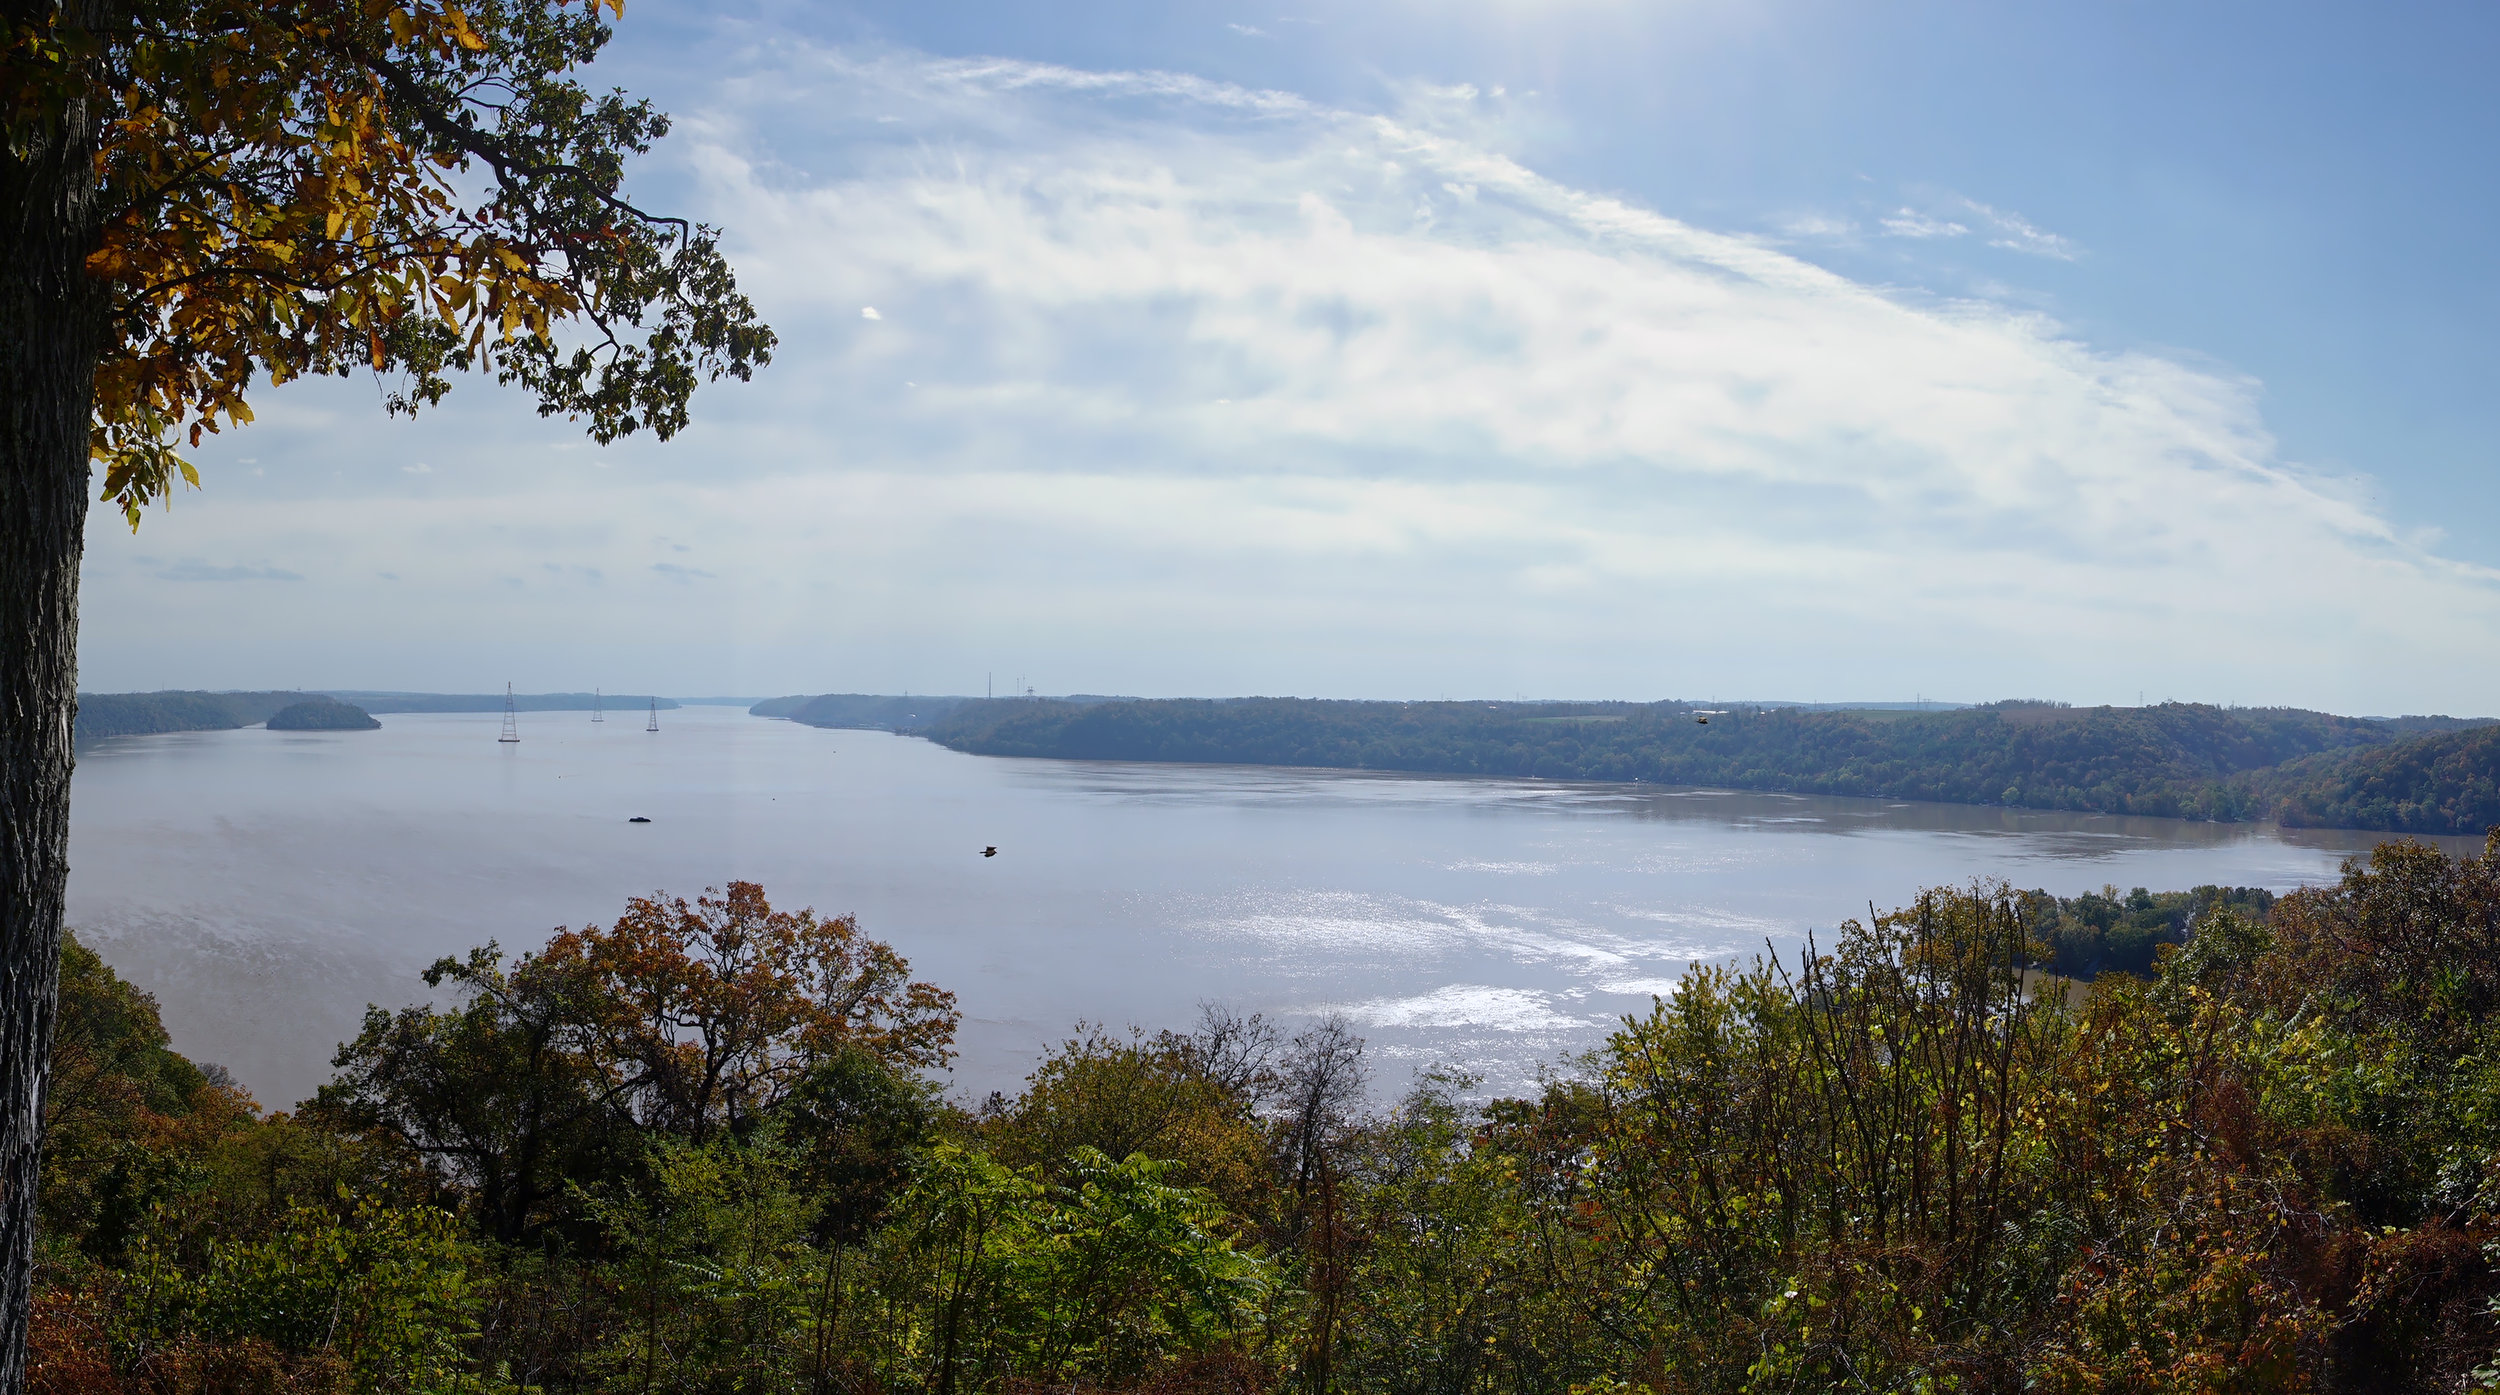 Panoramic view towards the South/Southwest from the Overlook at the Susquehannock State Park.